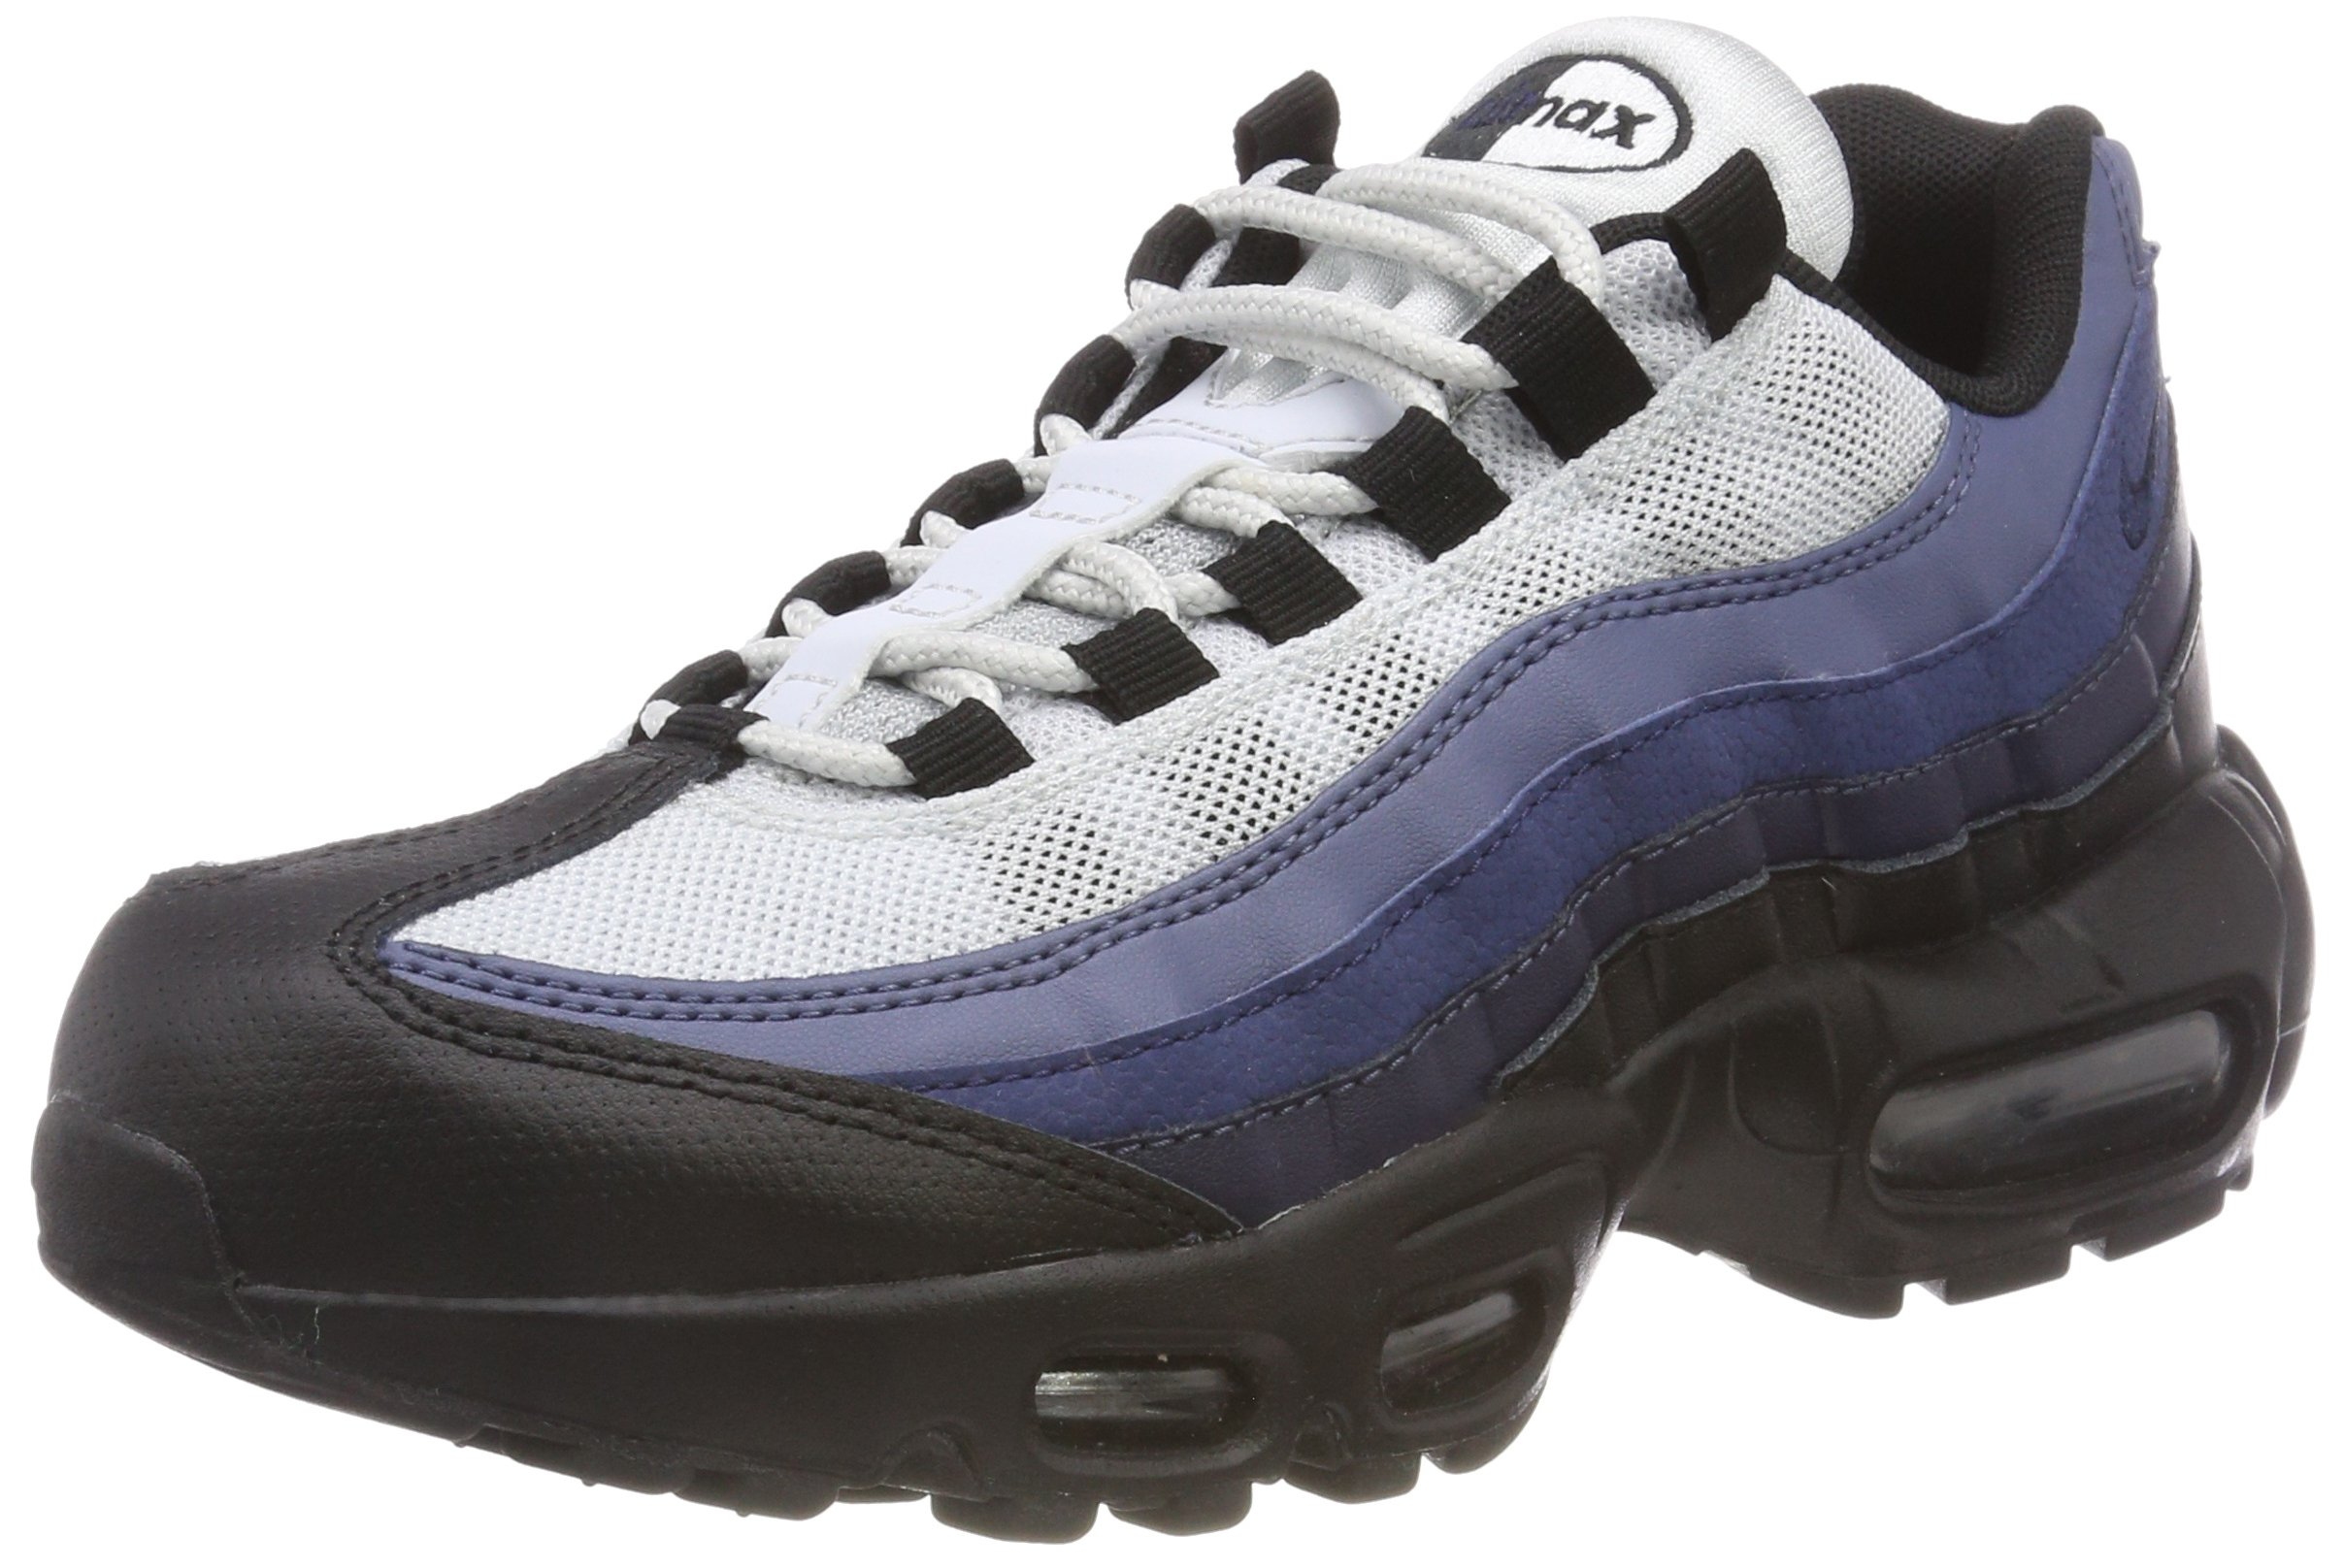 72e8897054 Galleon - Nike Air Max 95 Men's Essential Shoes Black/Obsidian/Navy Blue  749766-028 (12 D(M) US)